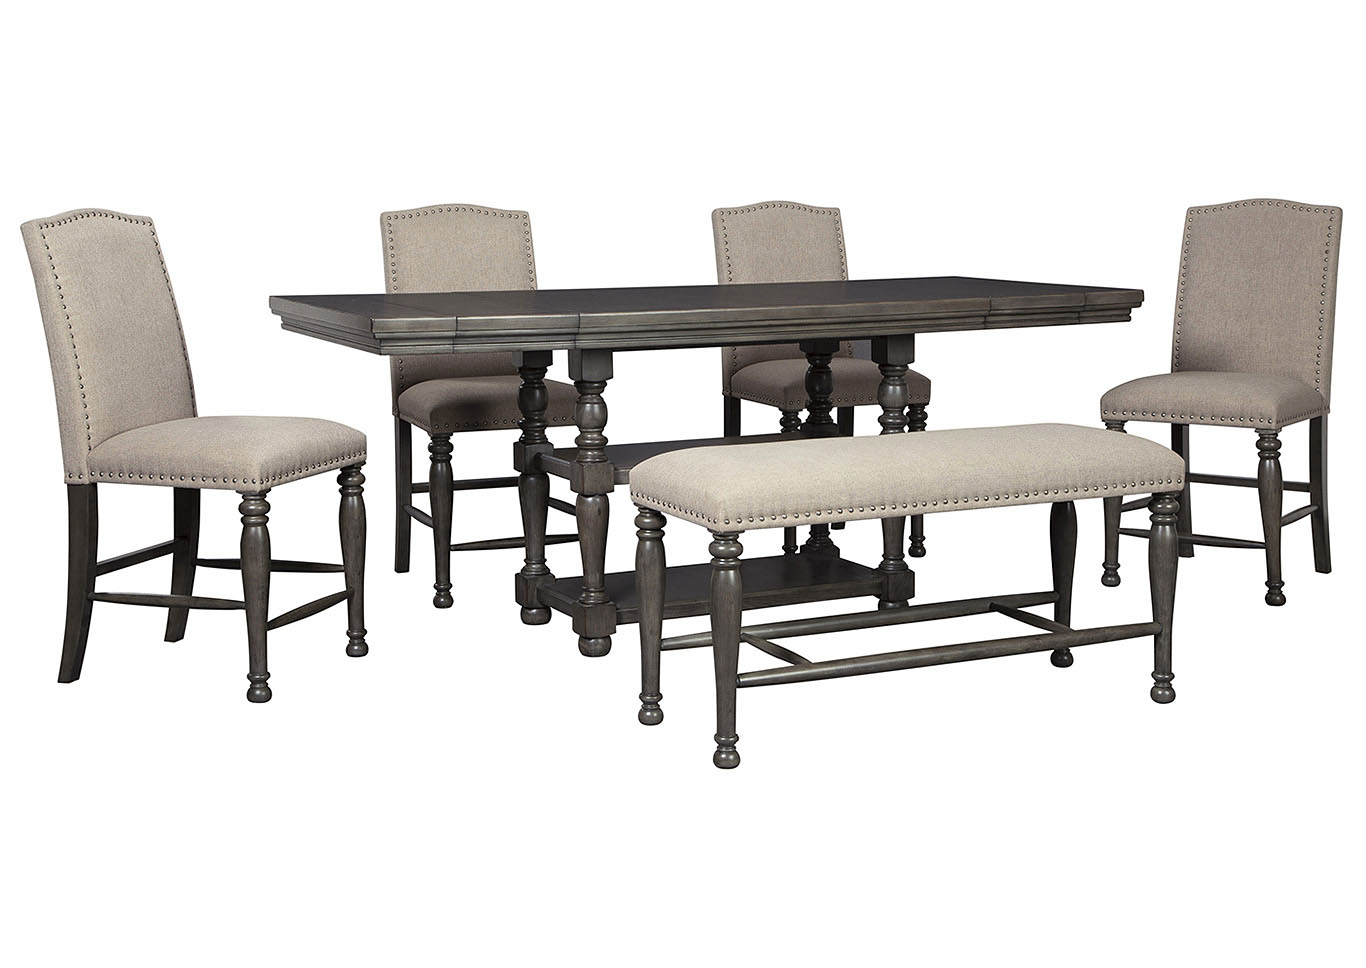 Picture of: Audberry Dining Set W 4 Bar Stools Bench The Furniture Shop Duncanville Tx